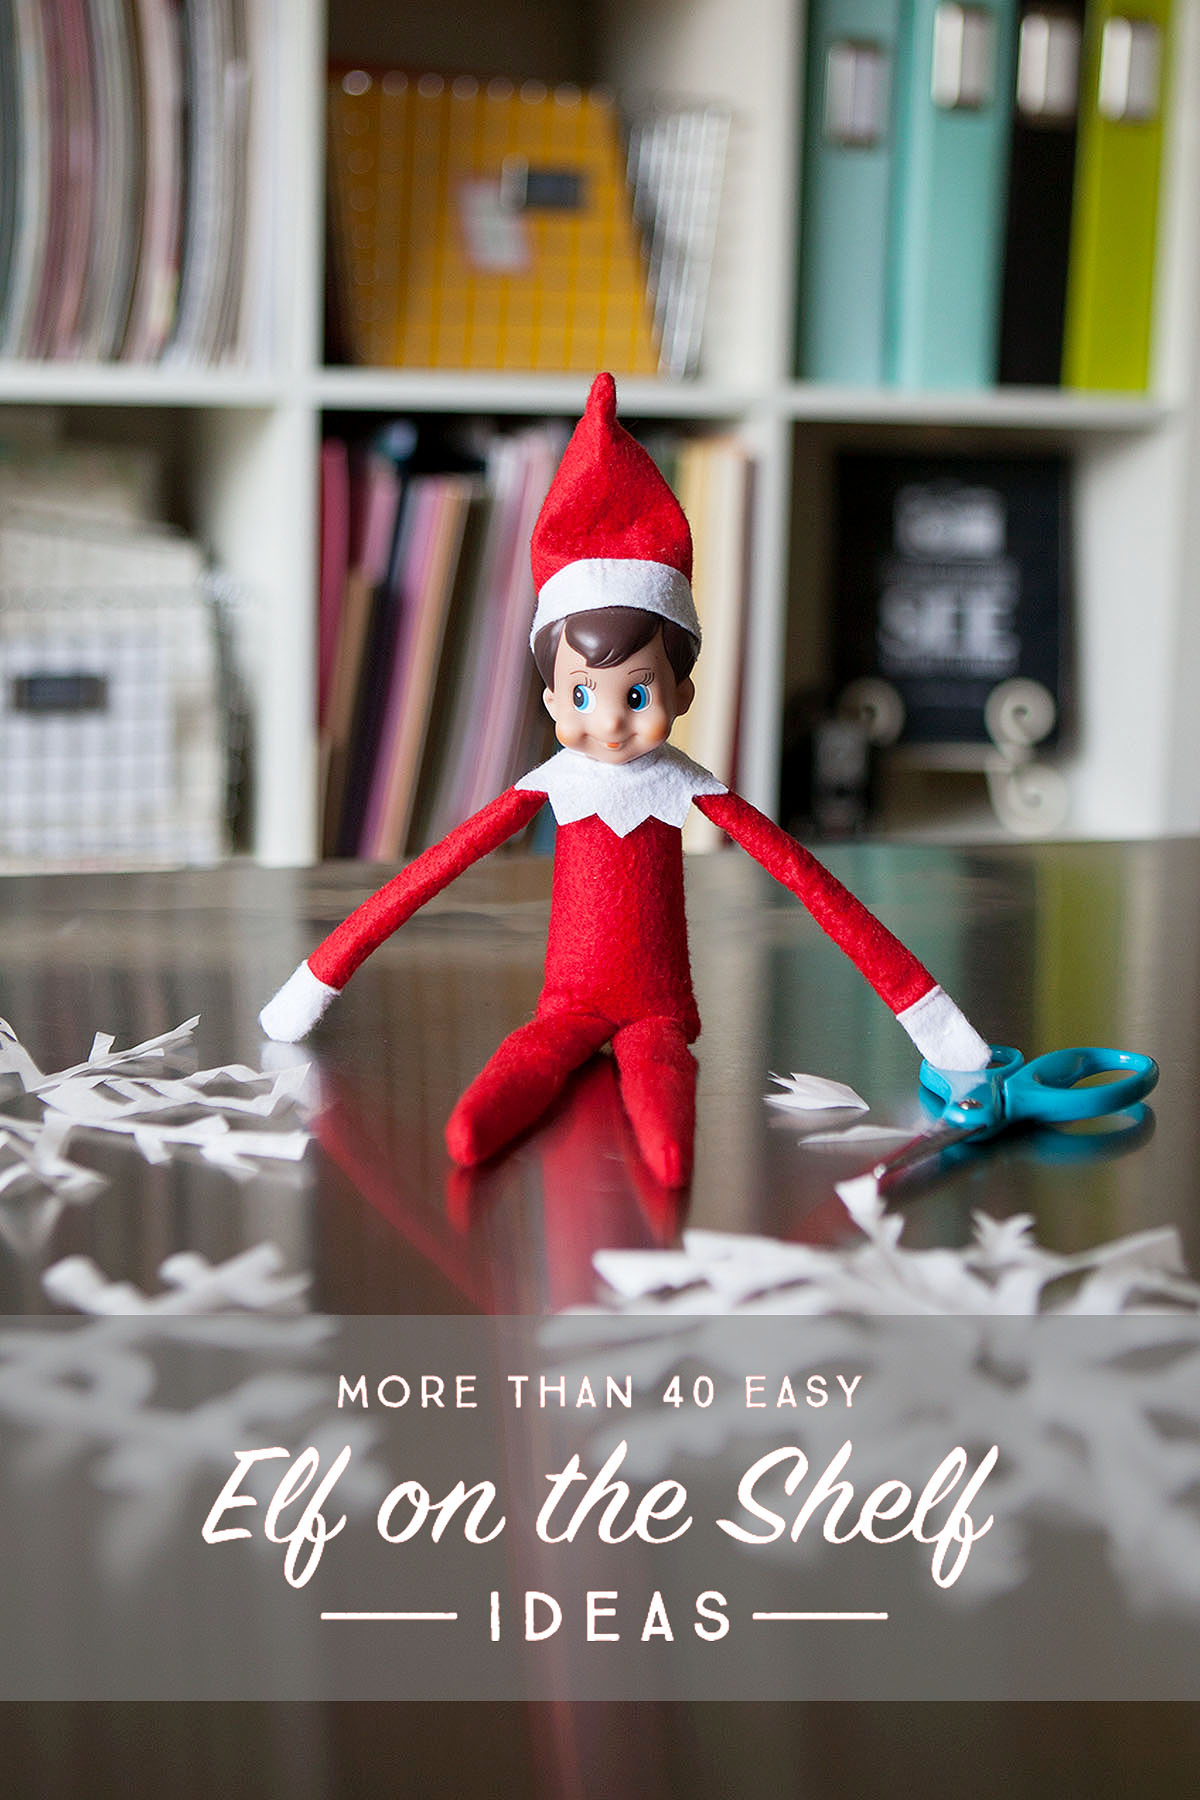 A master list of Elf antics to help you keep this tradition stress-free and fun!